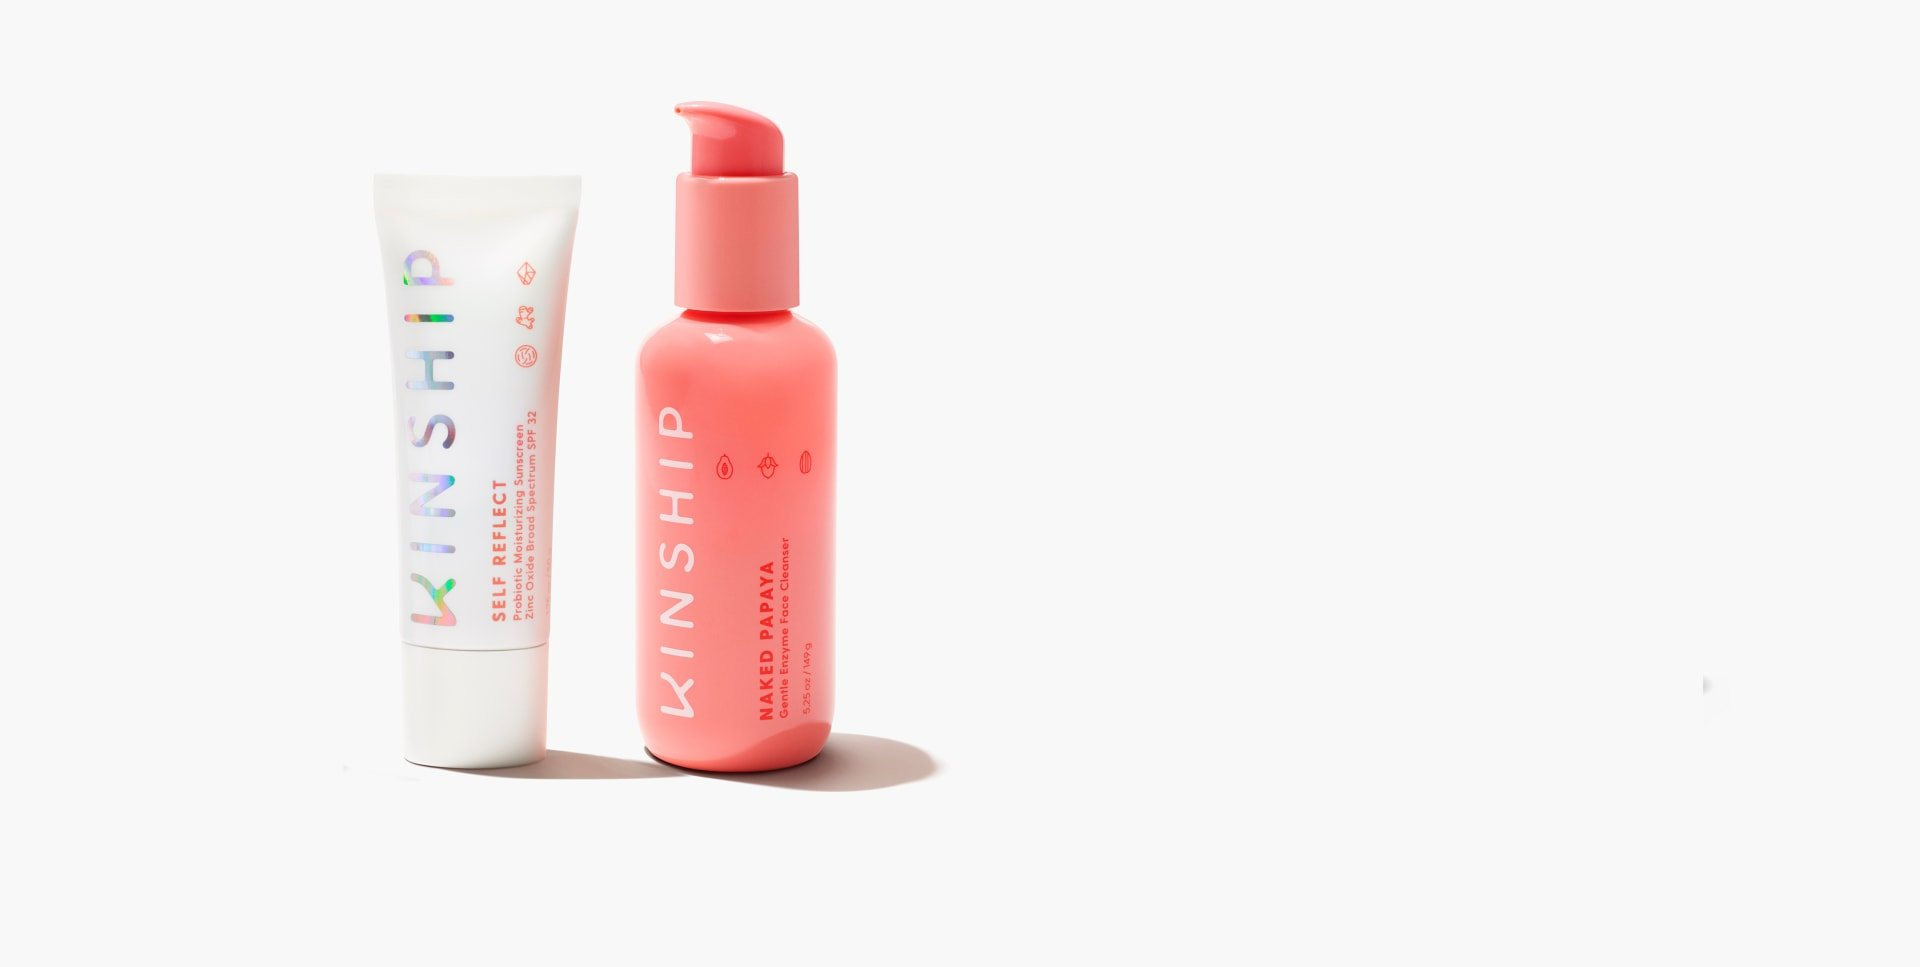 The Bright Side Cleanser + SPF Duo